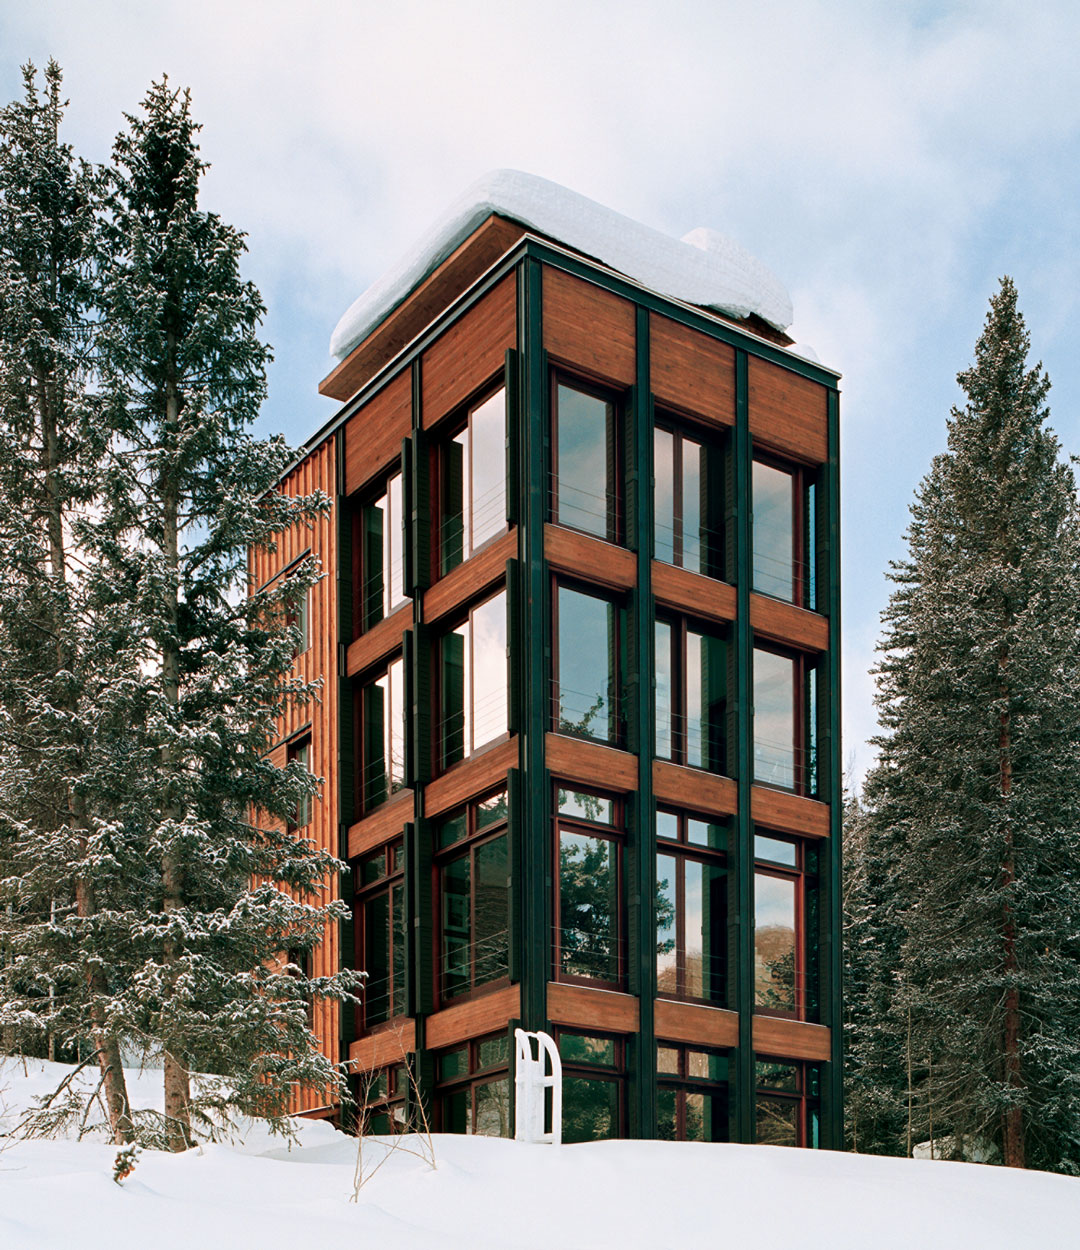 Annabelle Selldorf, Pika House, Dunton Springs, Colorado, USA, 2004. Photo by Thomas Loof. Courtesy of Selldorf Architects